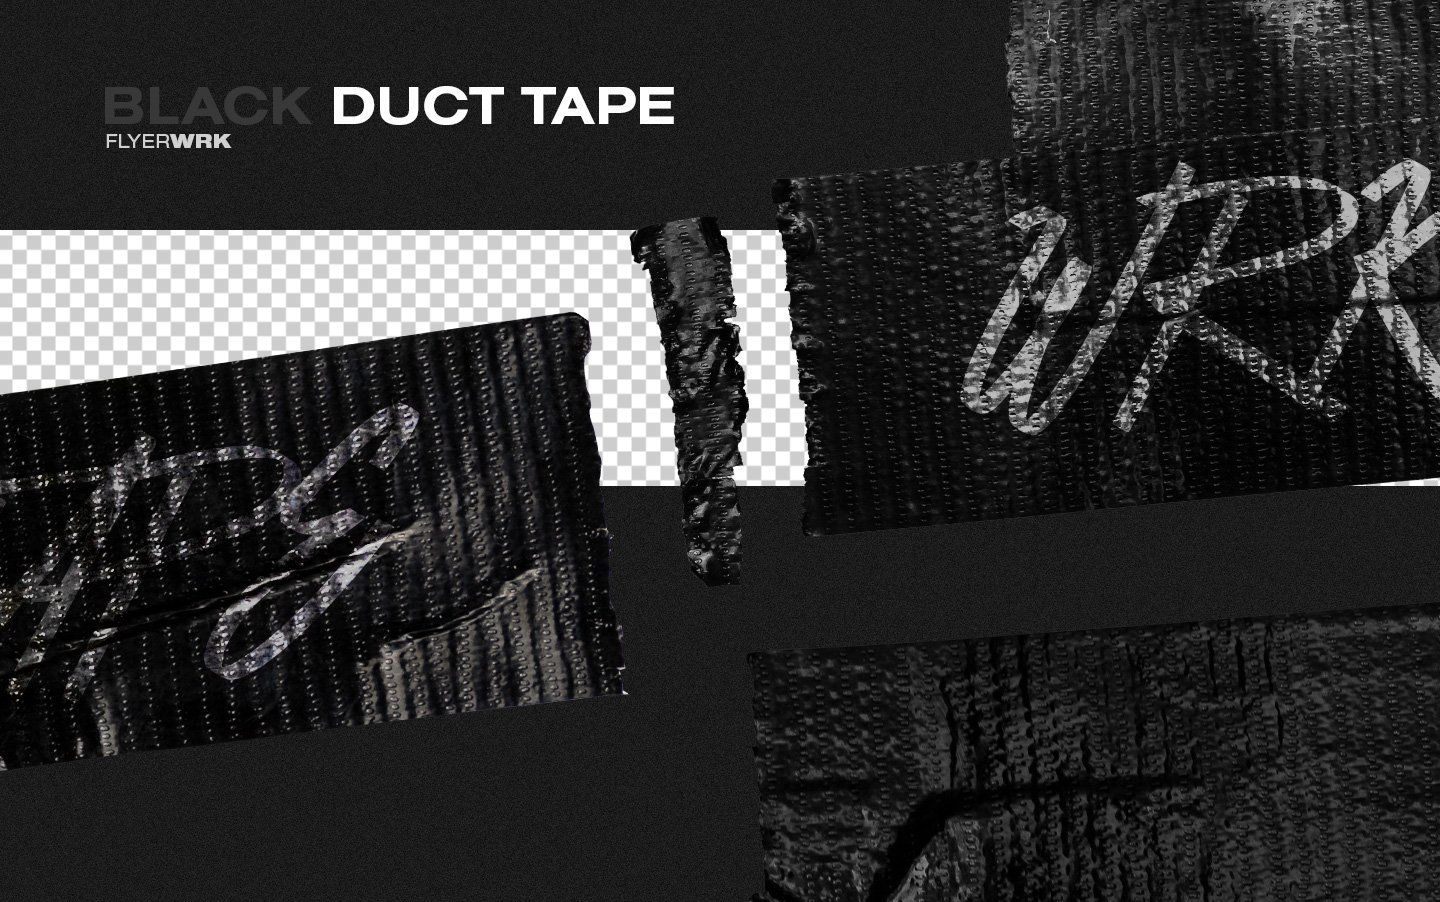 Isolated Adhesive Tape Pieces Adhesive Tape Black Duct Tape Packaging Tape